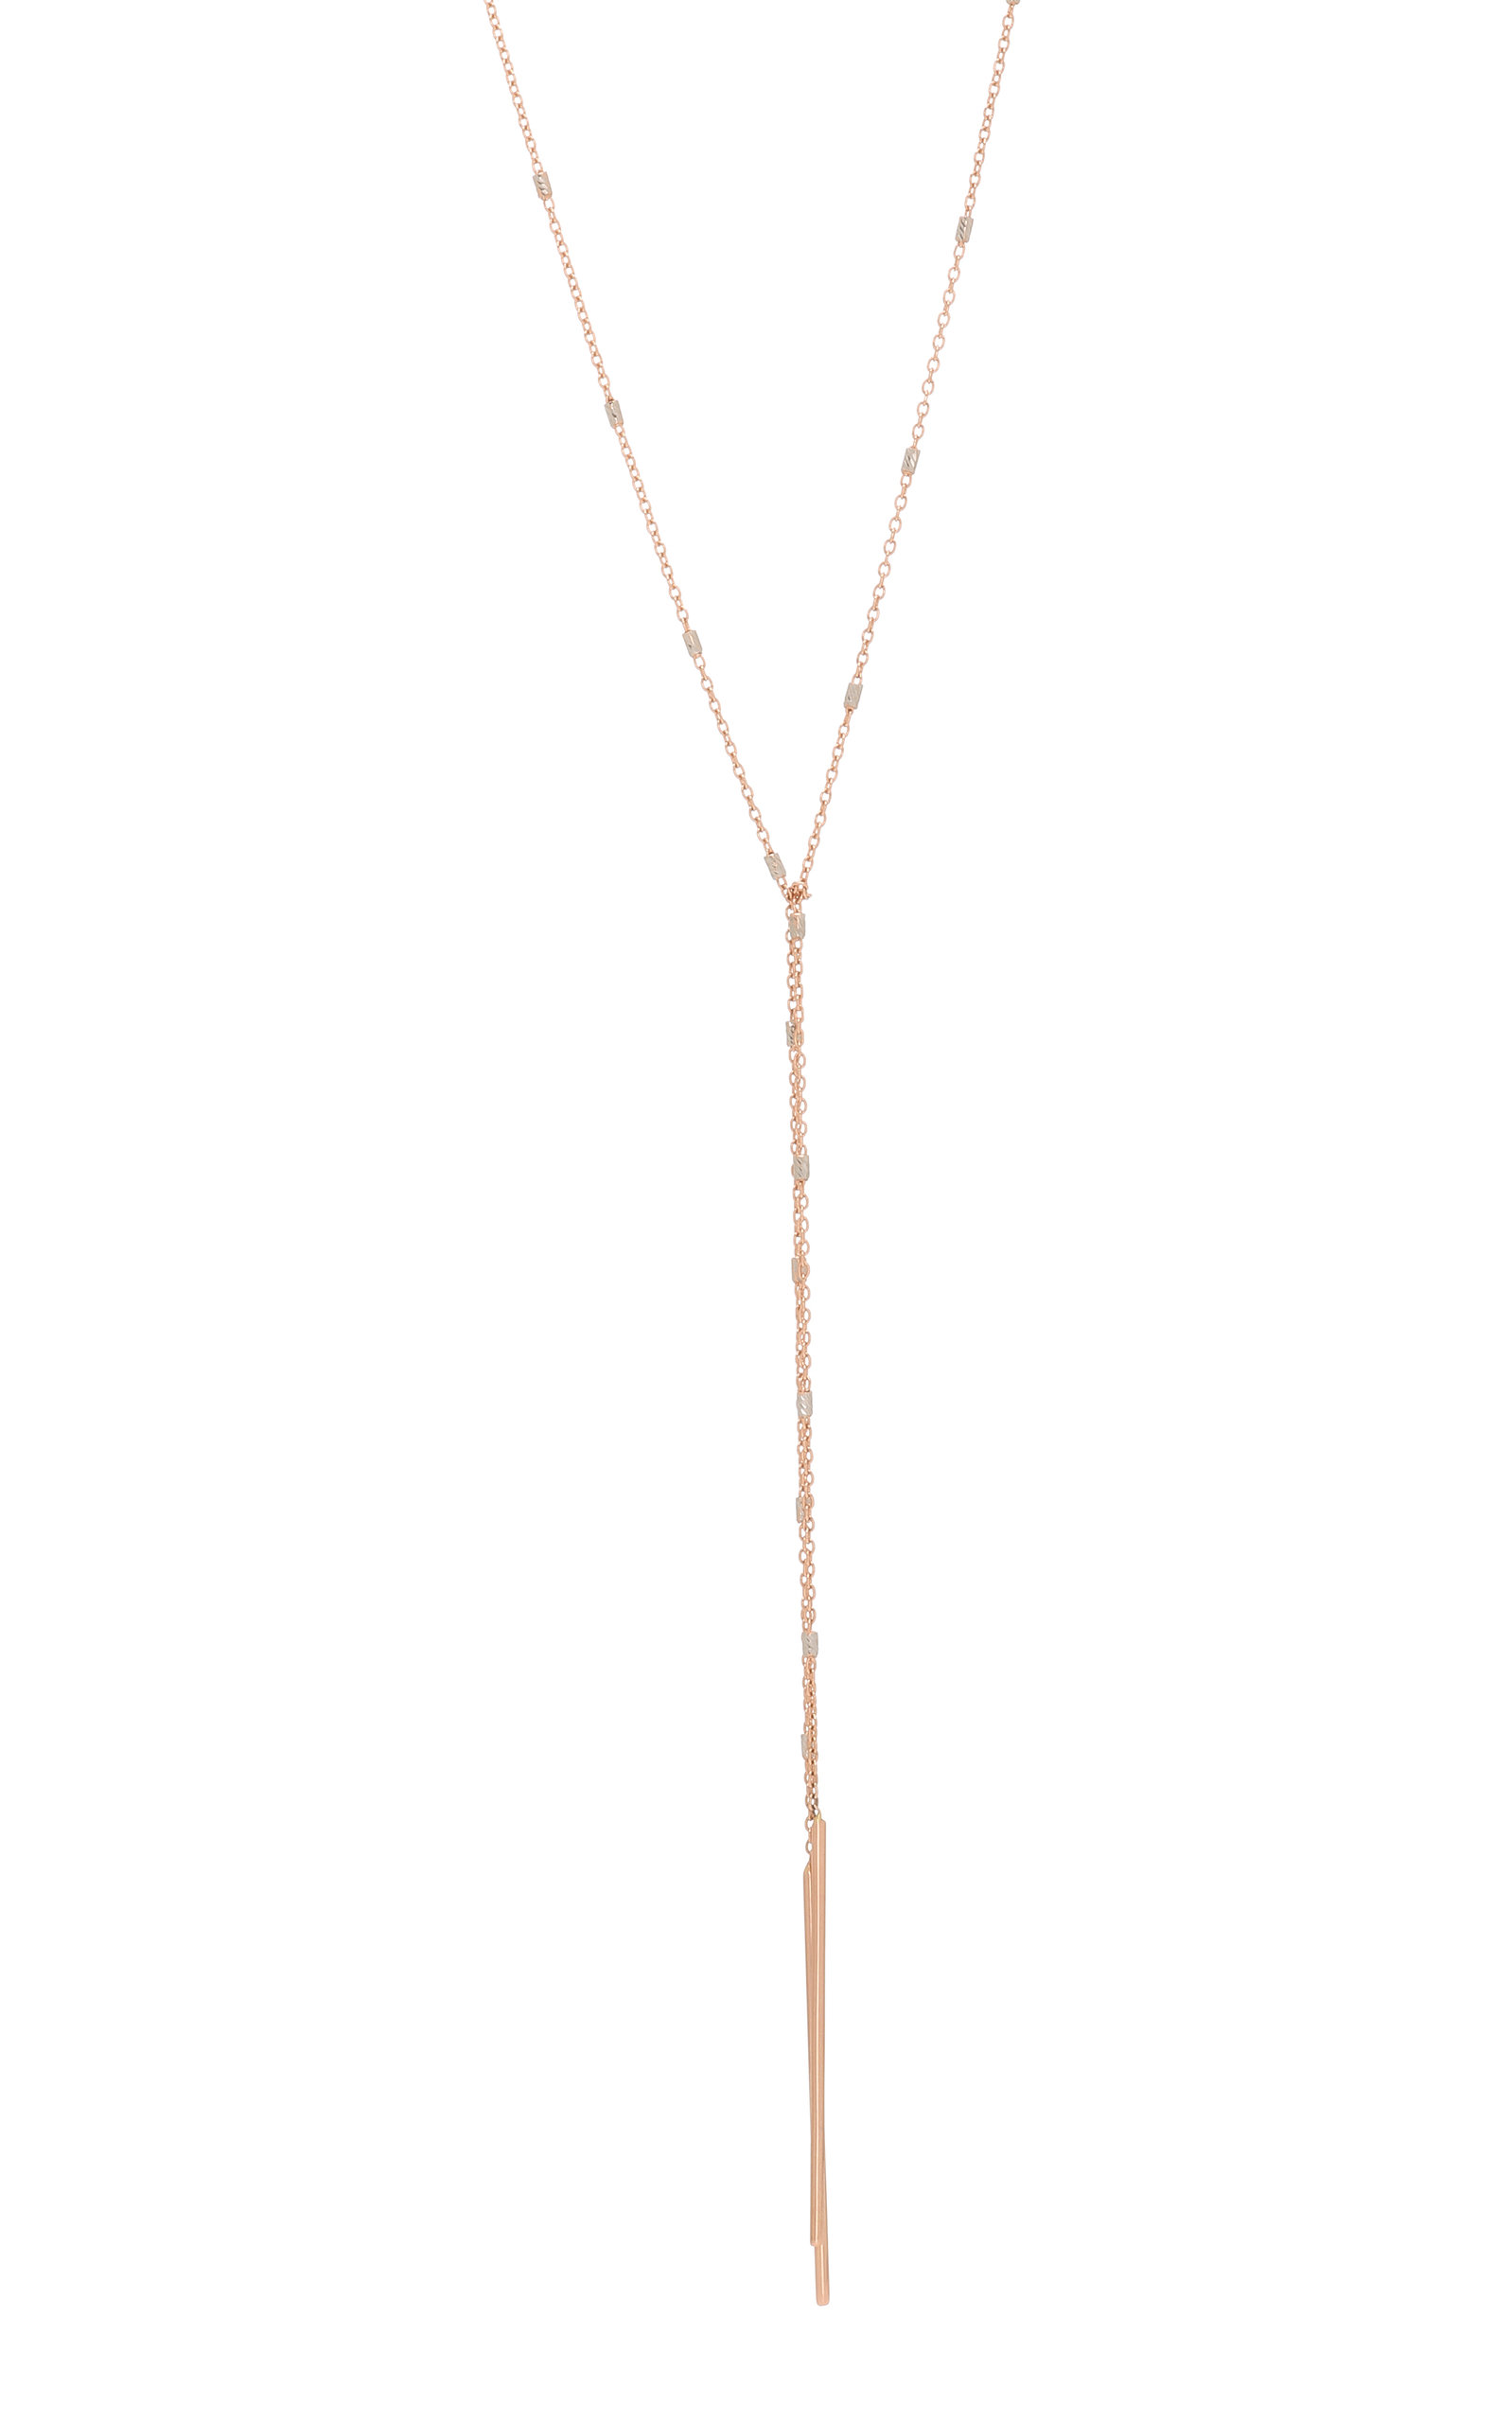 Tie-Front 14K Rose Gold Necklace White/Space sOkiDTOelk